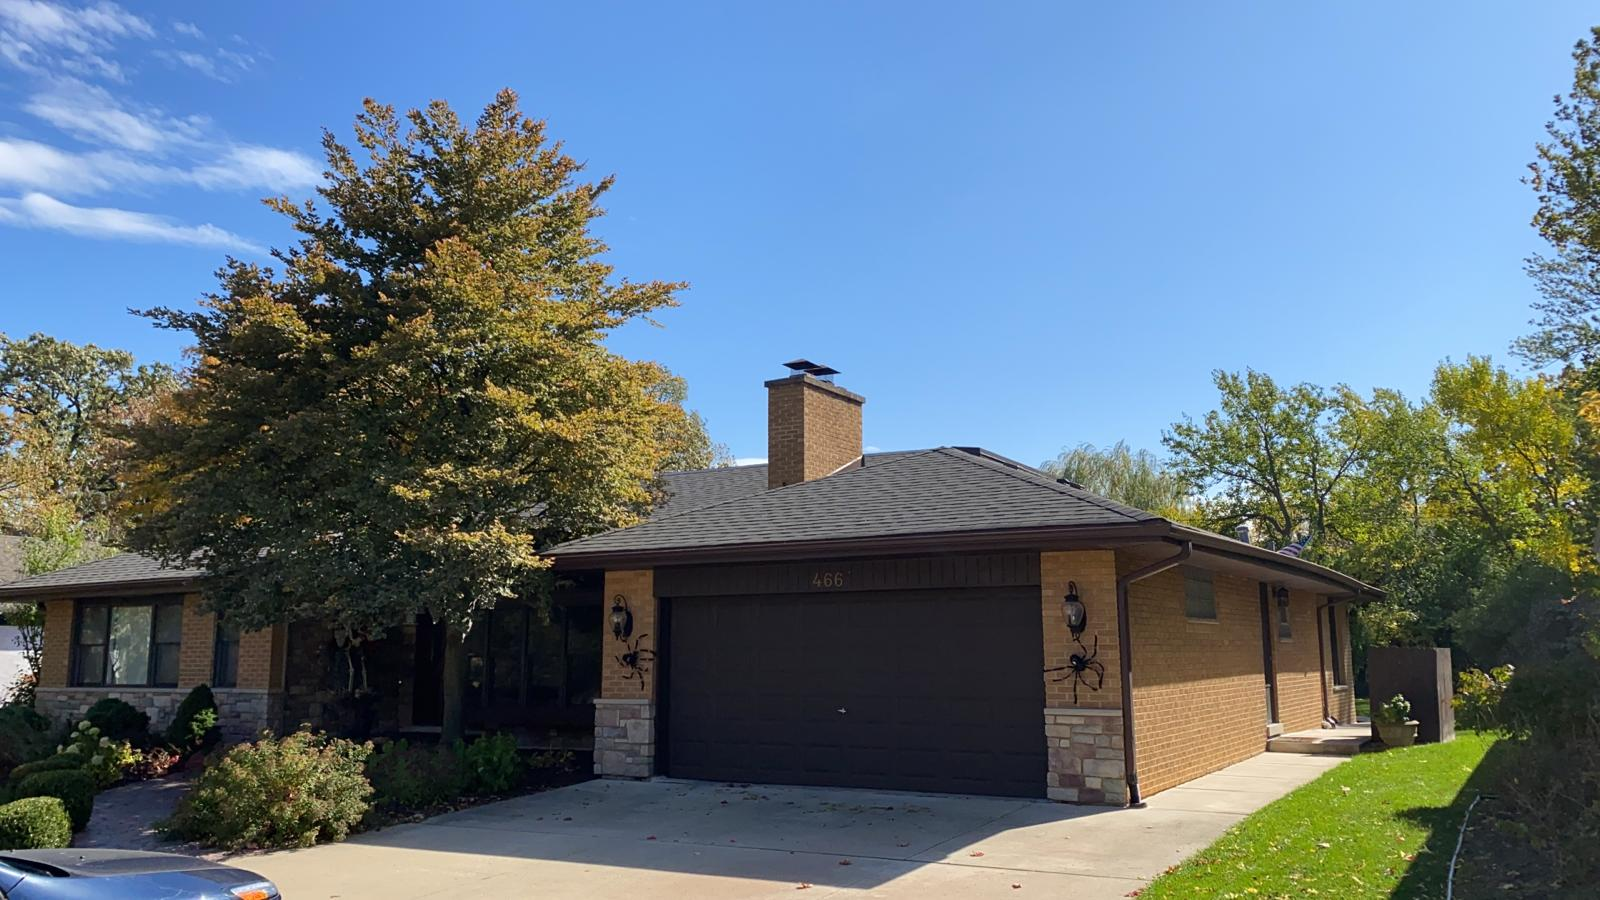 Chicagoland Roof by Feze Roofing Inc. of Elmhurst, IL